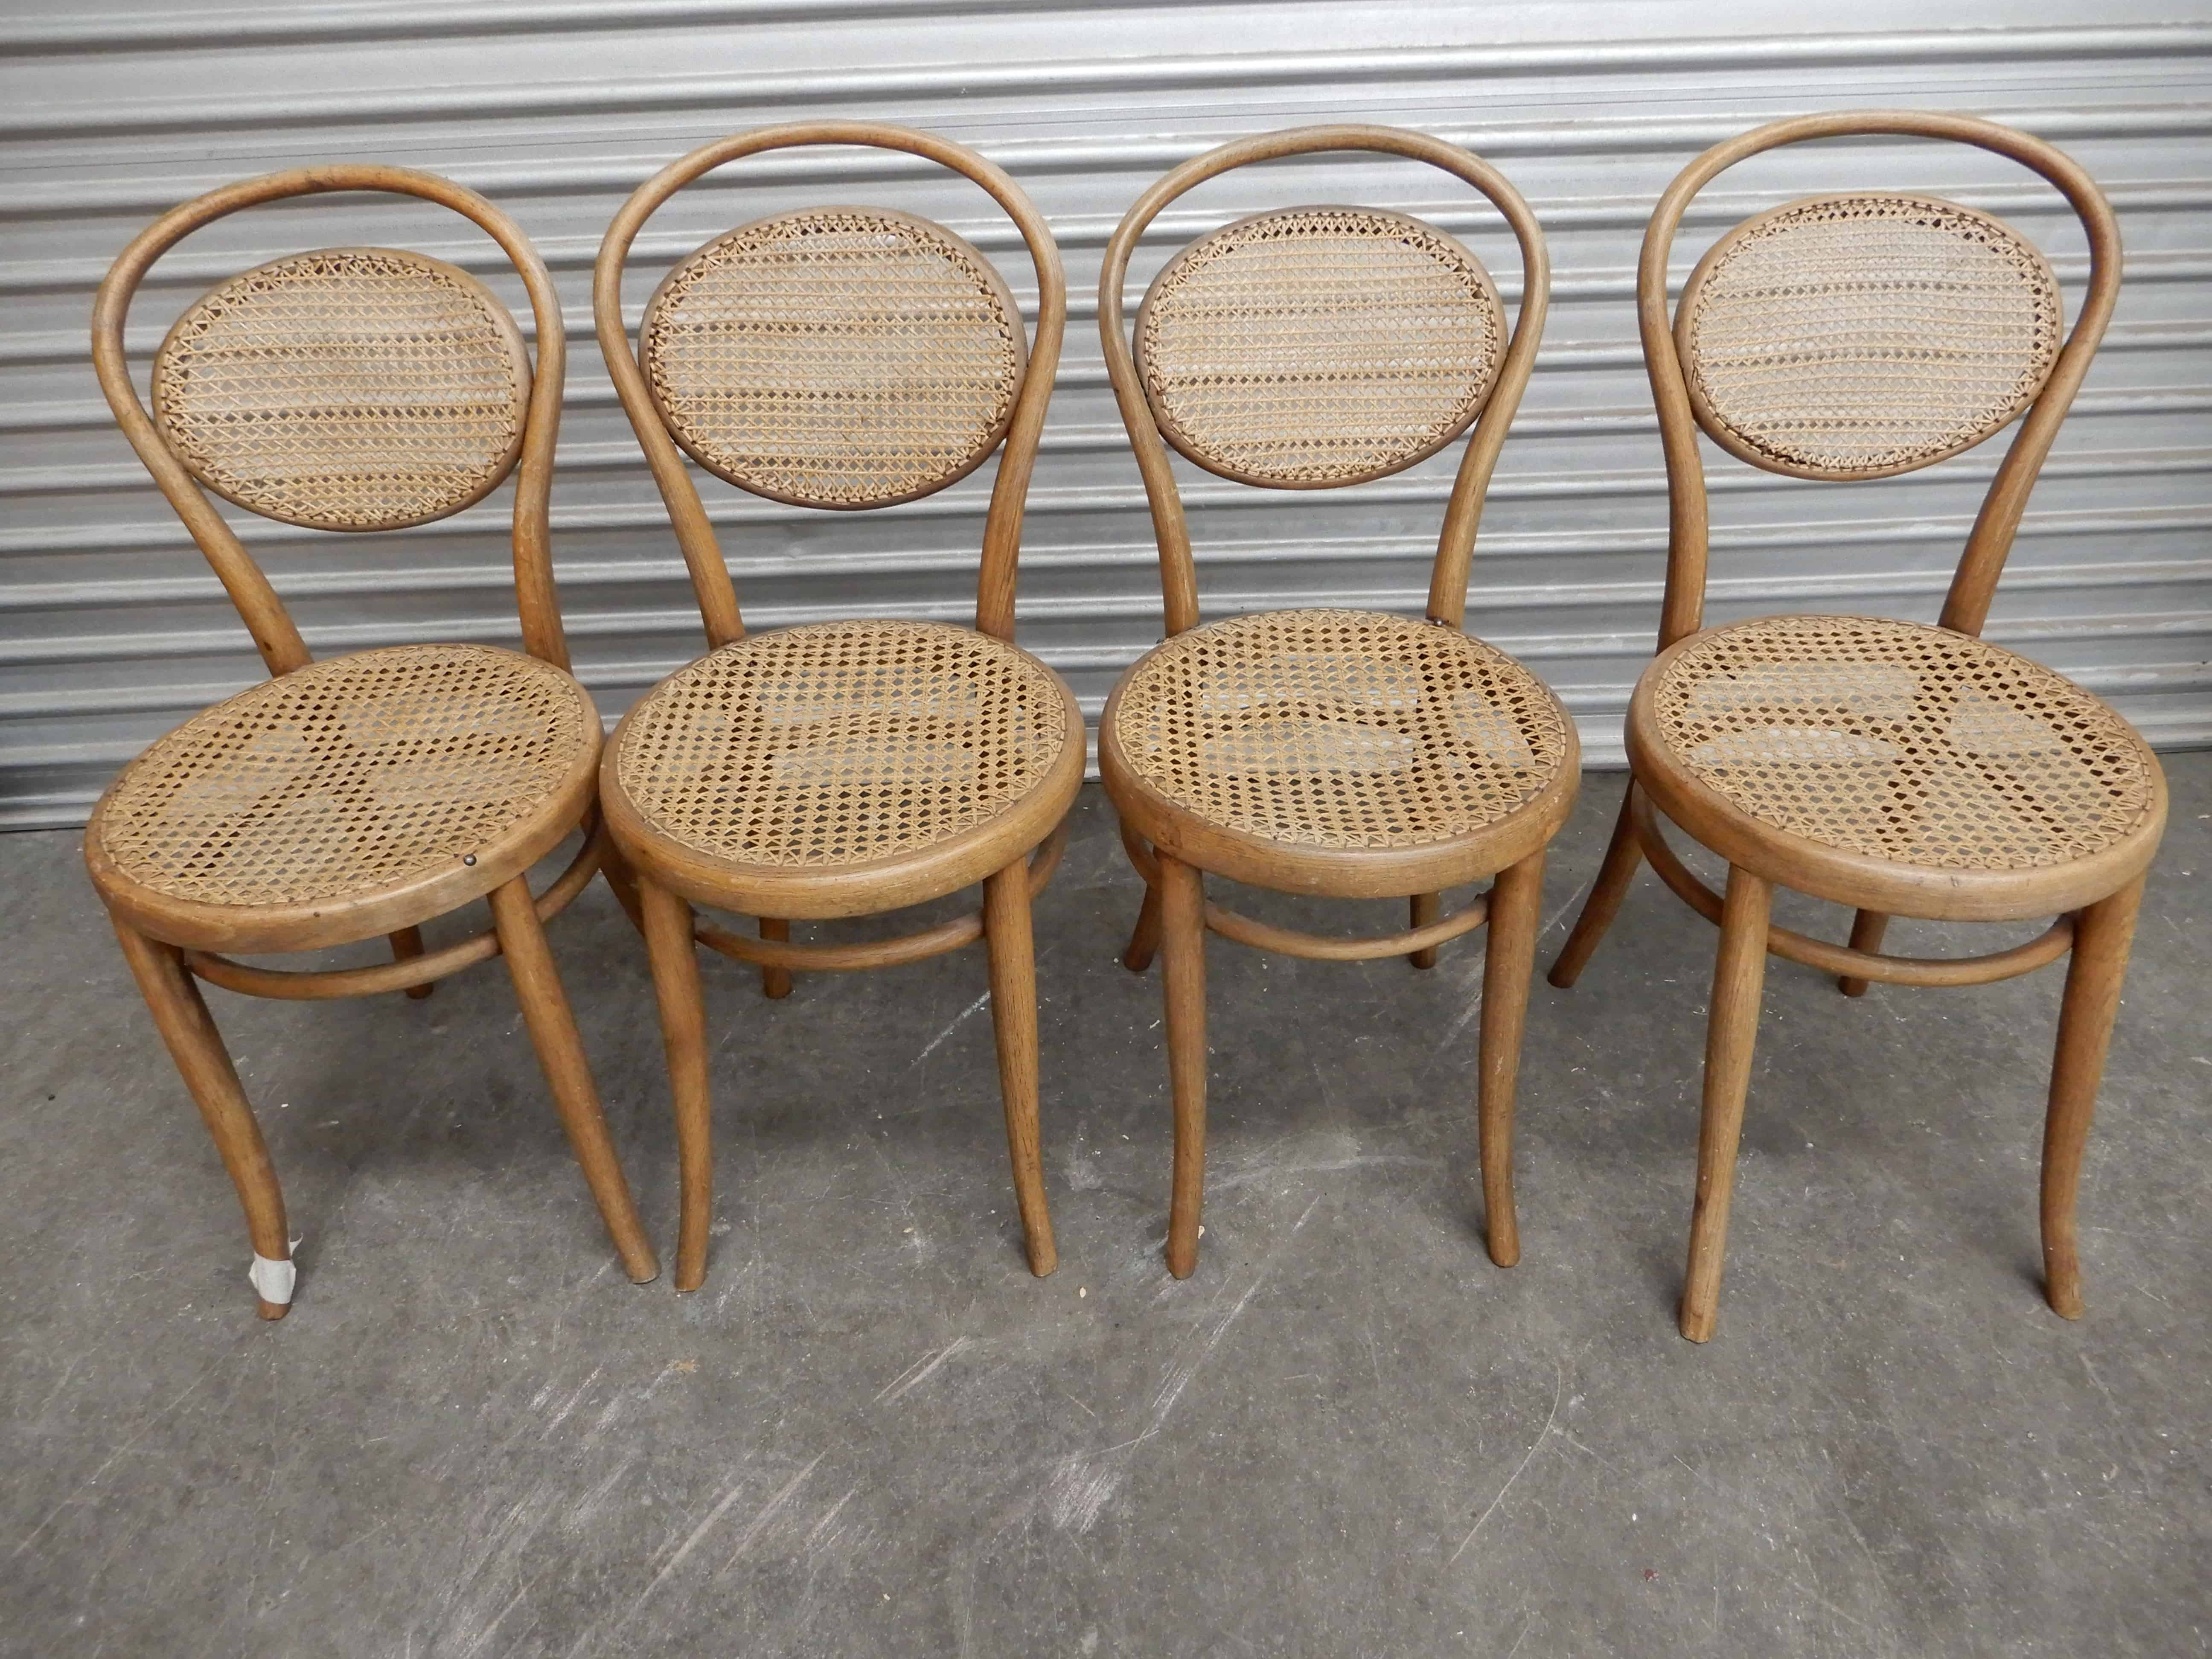 Chairs X 4 – Set Of 4 Original Bentwood Timber Chairs, 8M Within Mia Bentwood Chairs (#2 of 20)